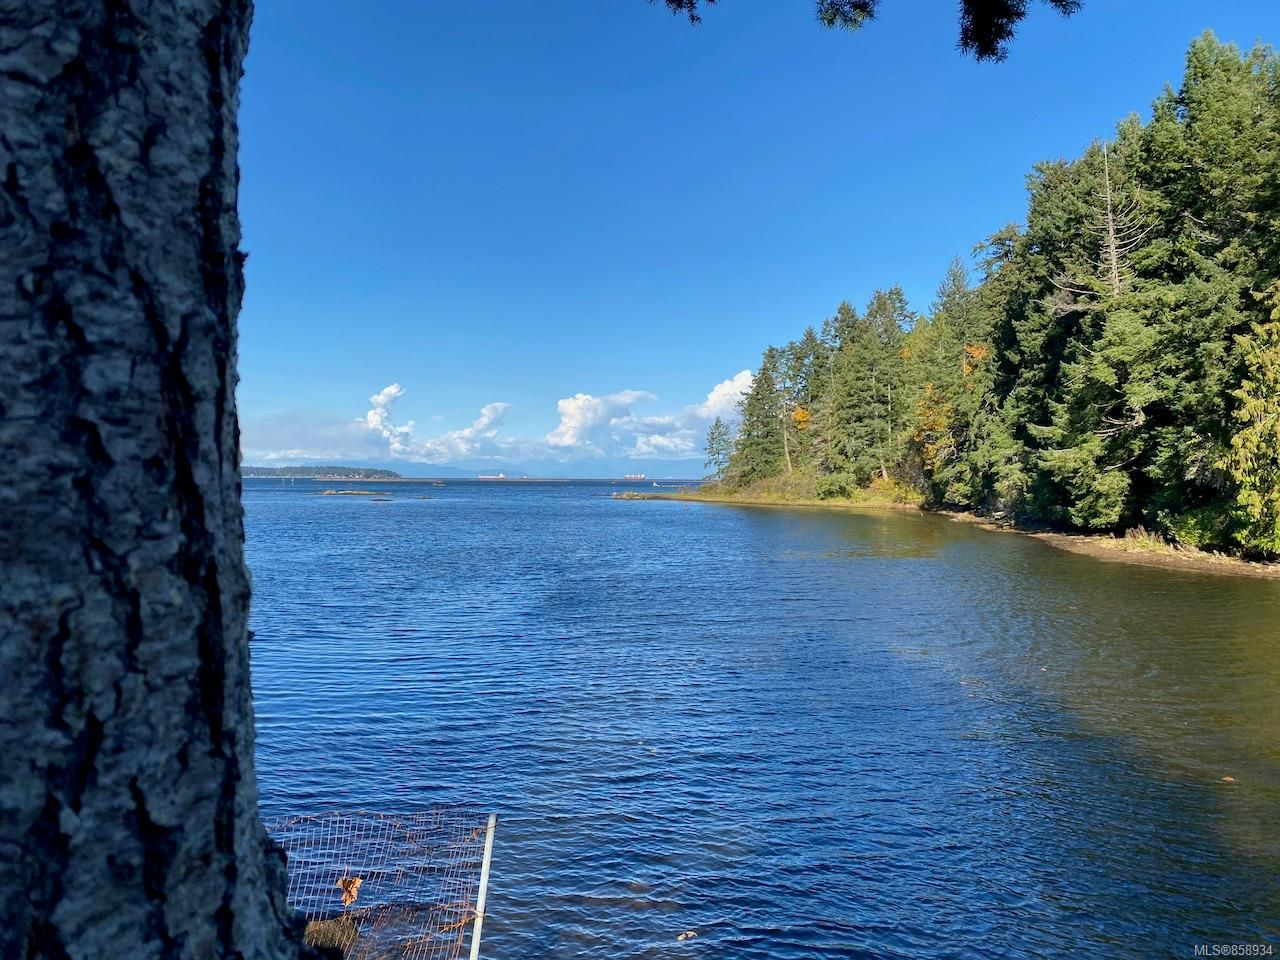 Main Photo: 20 Maki Rd in : Na Chase River Unimproved Land for sale (Nanaimo)  : MLS®# 858934